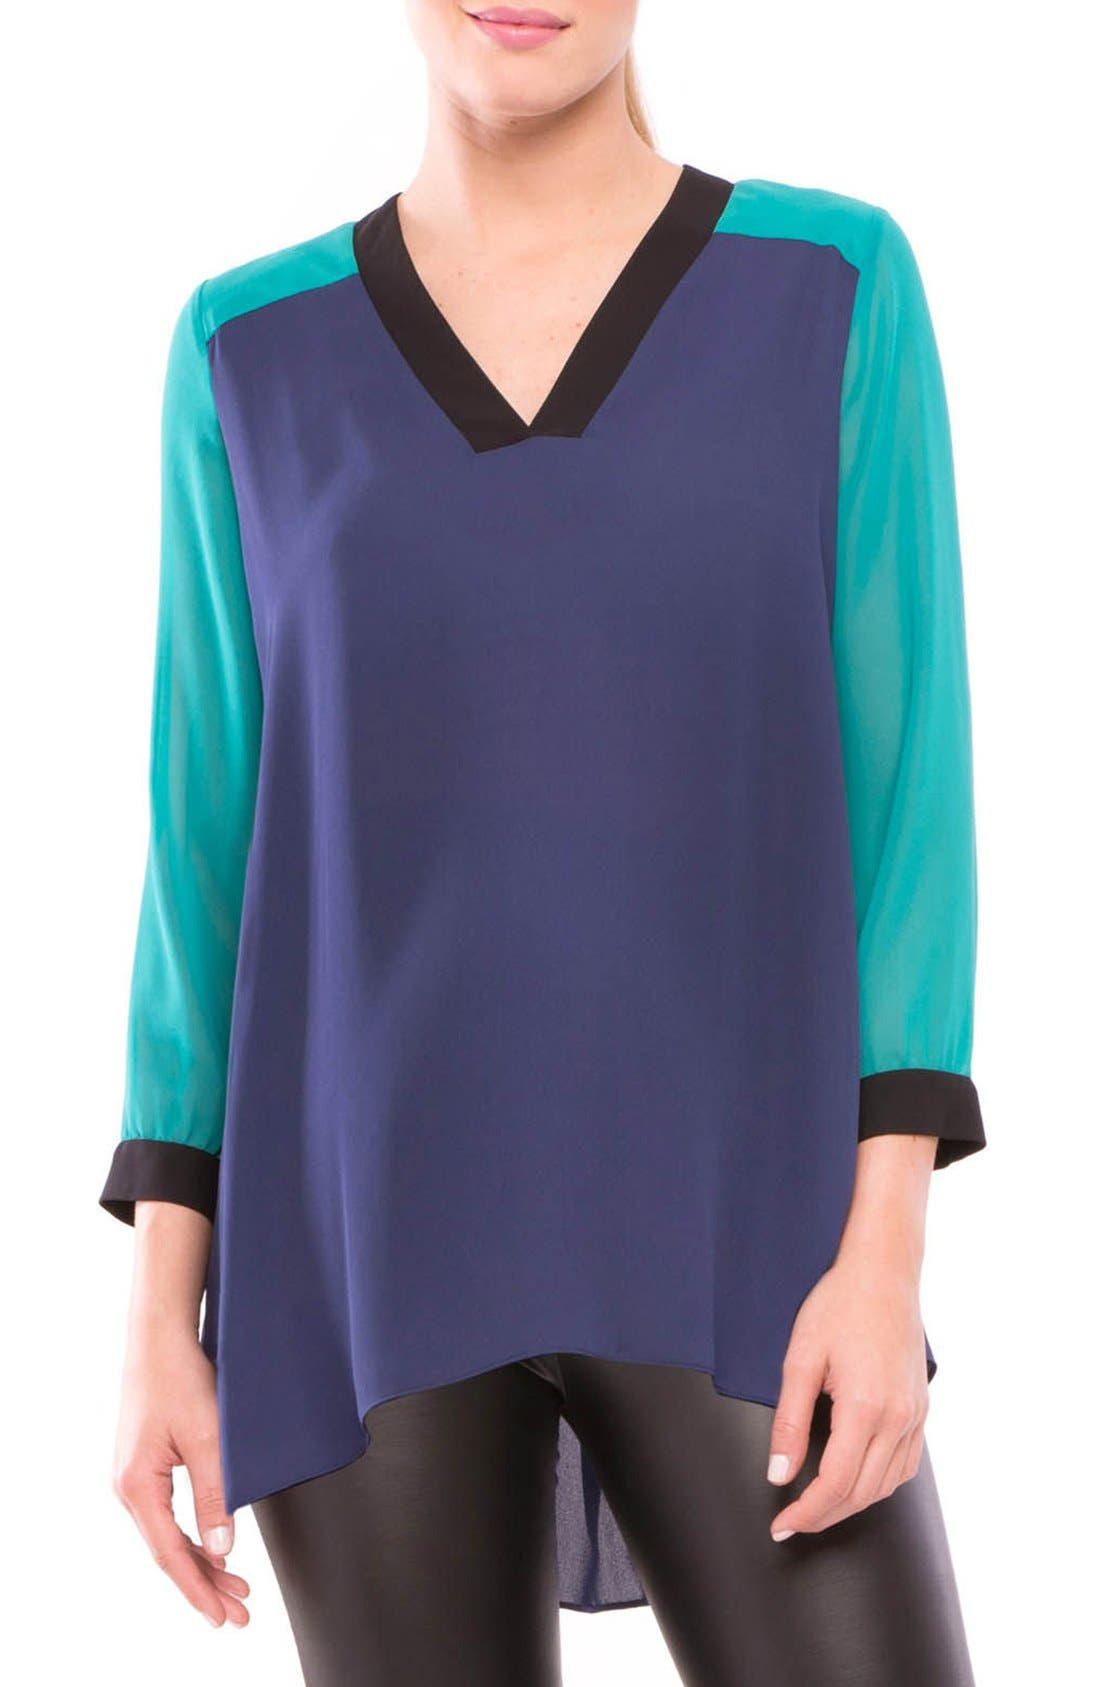 Leah Maternity Top,                             Main thumbnail 1, color,                             NAVY/ TEAL/ BLACK